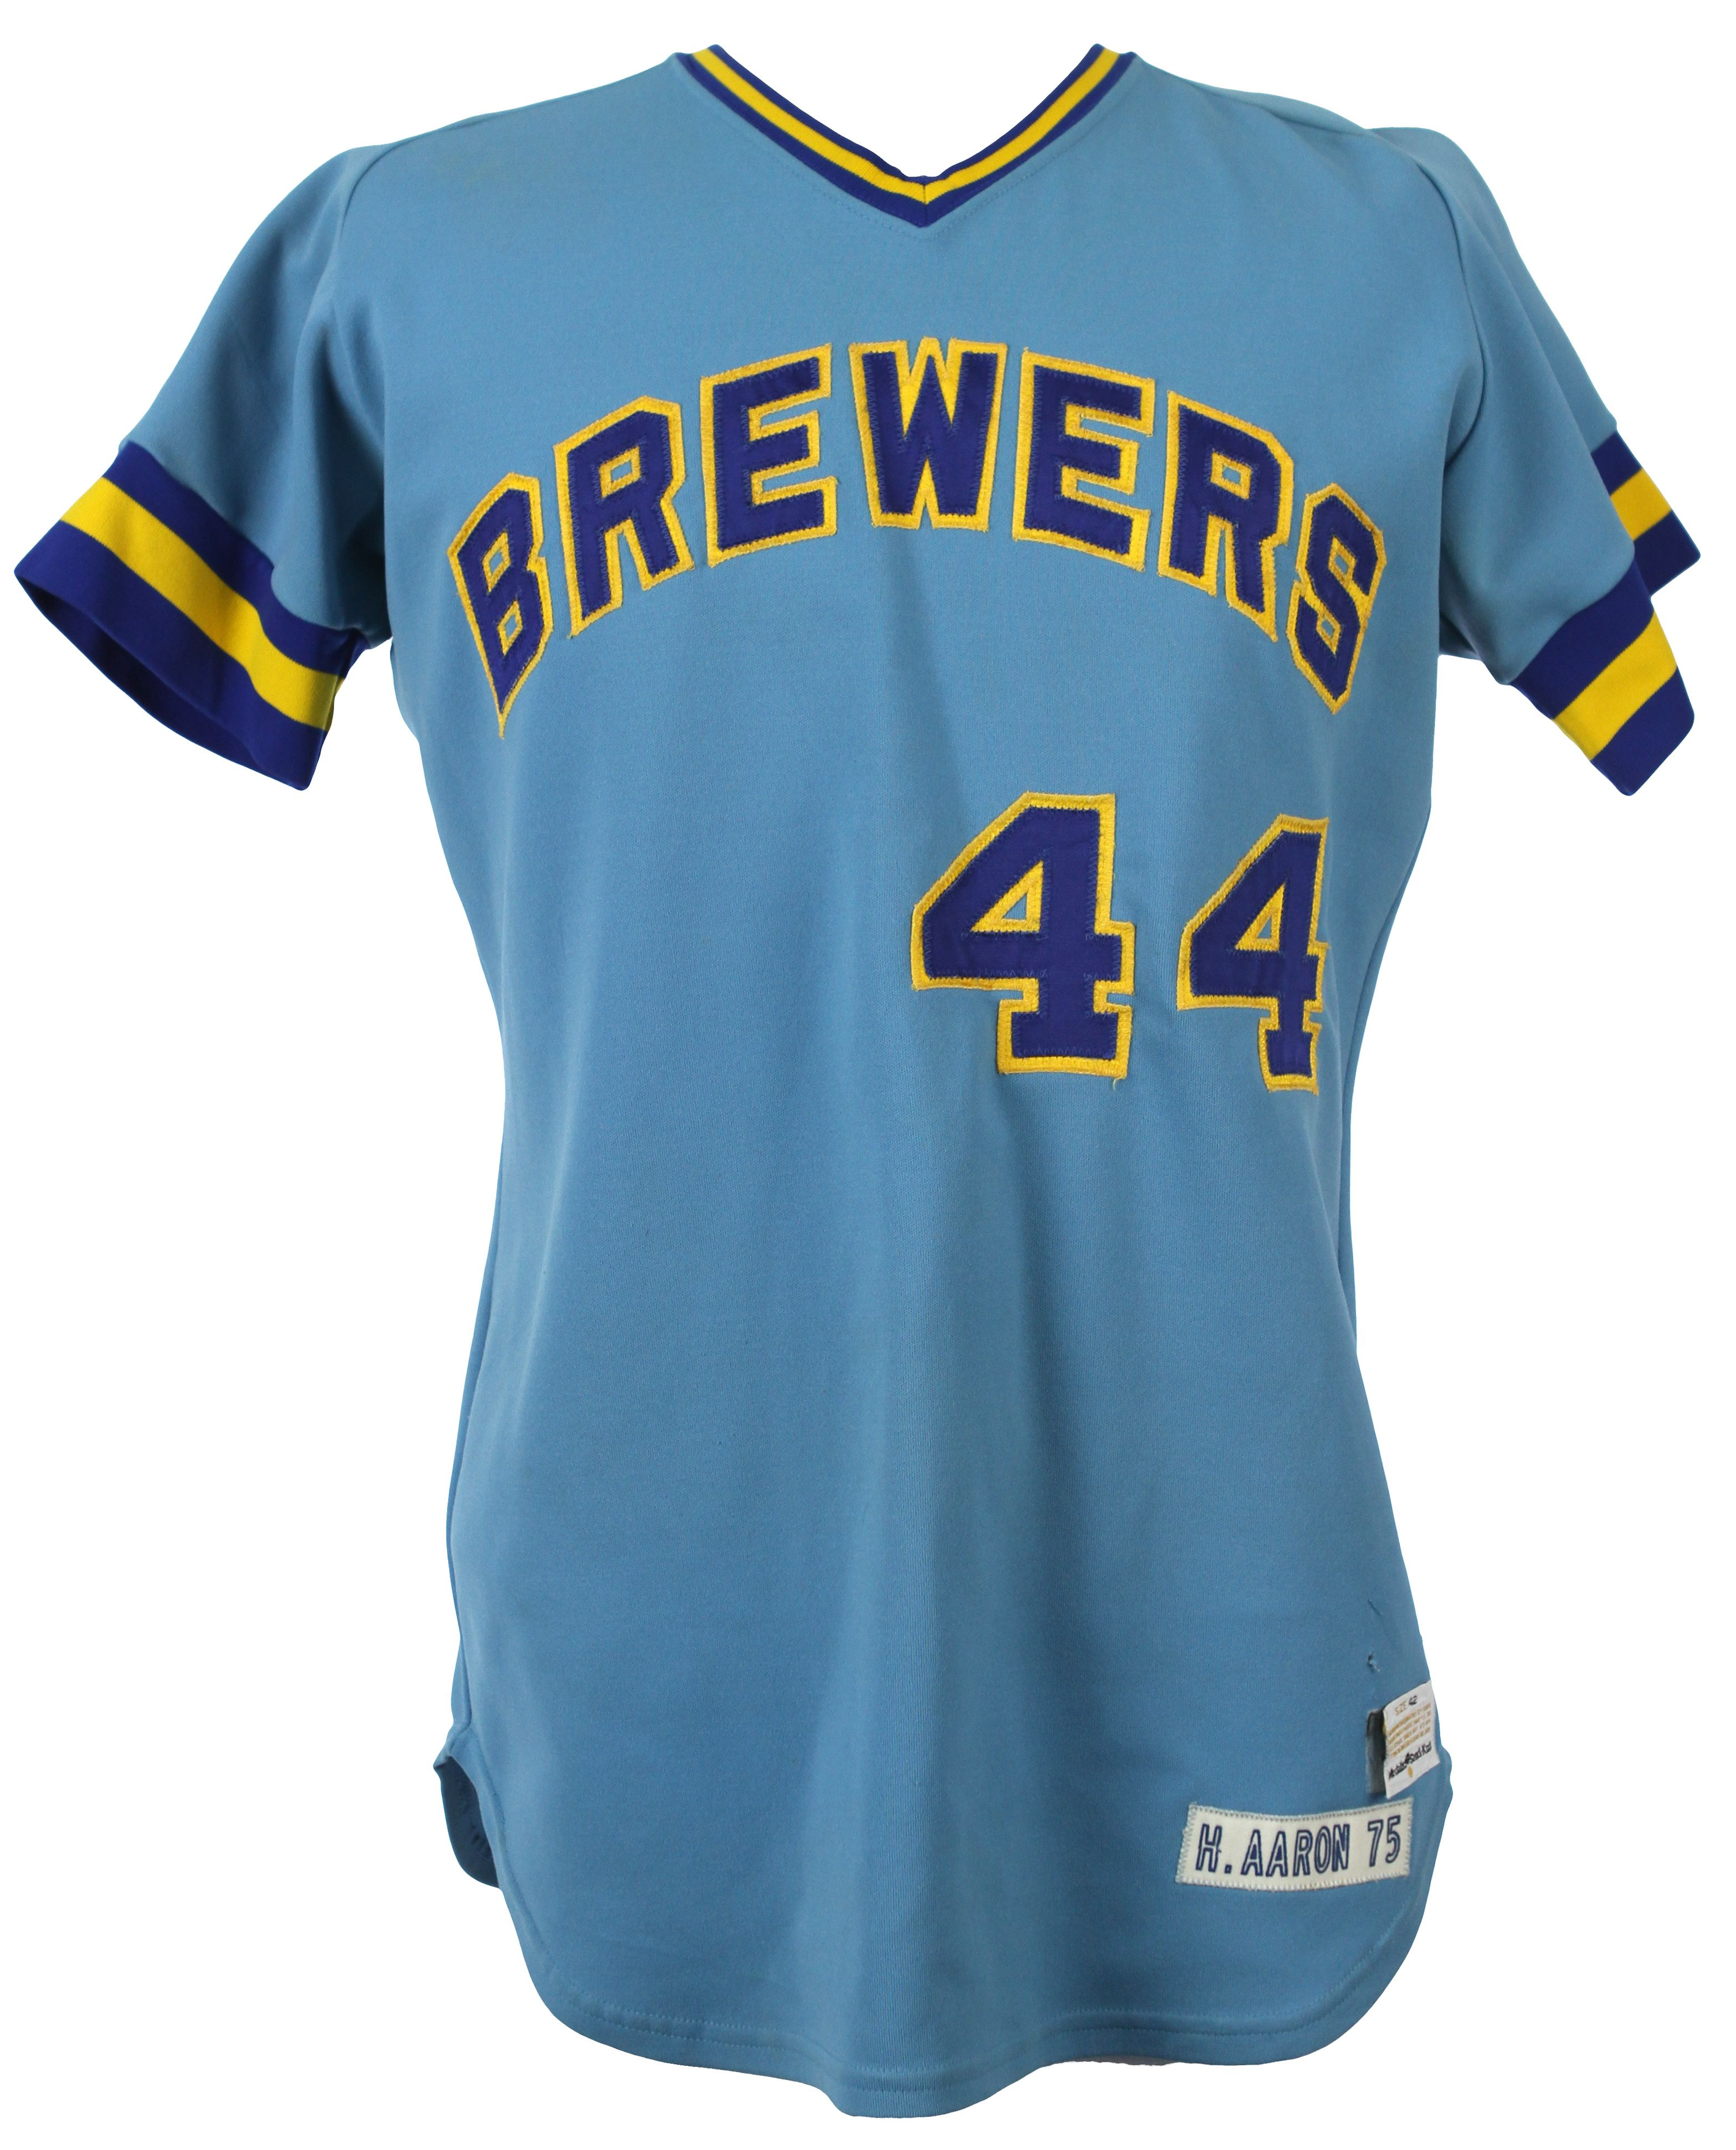 Hank Aaron Detail Jersey Milwaukee - Loa Brewers sample Lot 1975 Prototype mears bebcaadbeda|Inspirational Football Quotes From The Gridiron